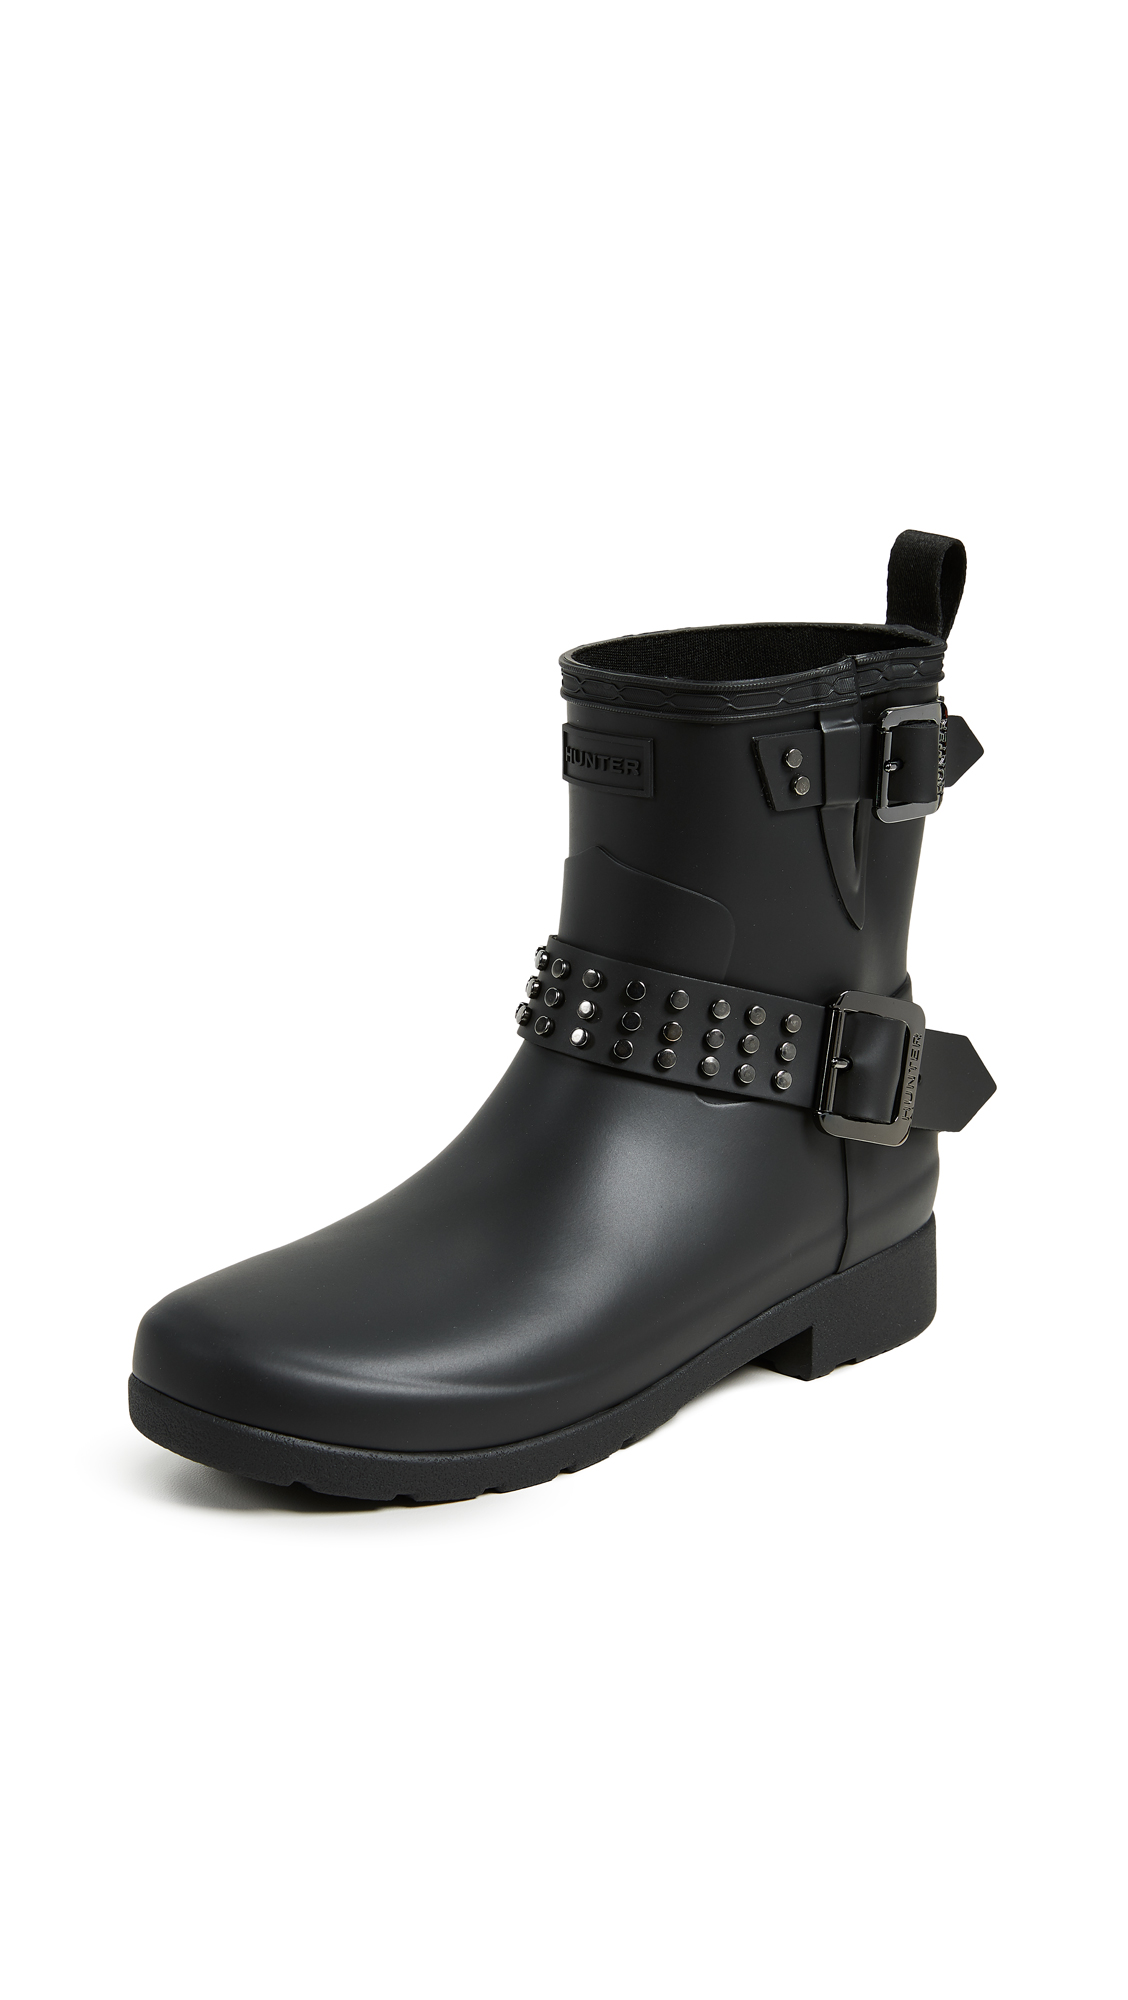 Hunter Boots Refined Stud Biker Boots - Black